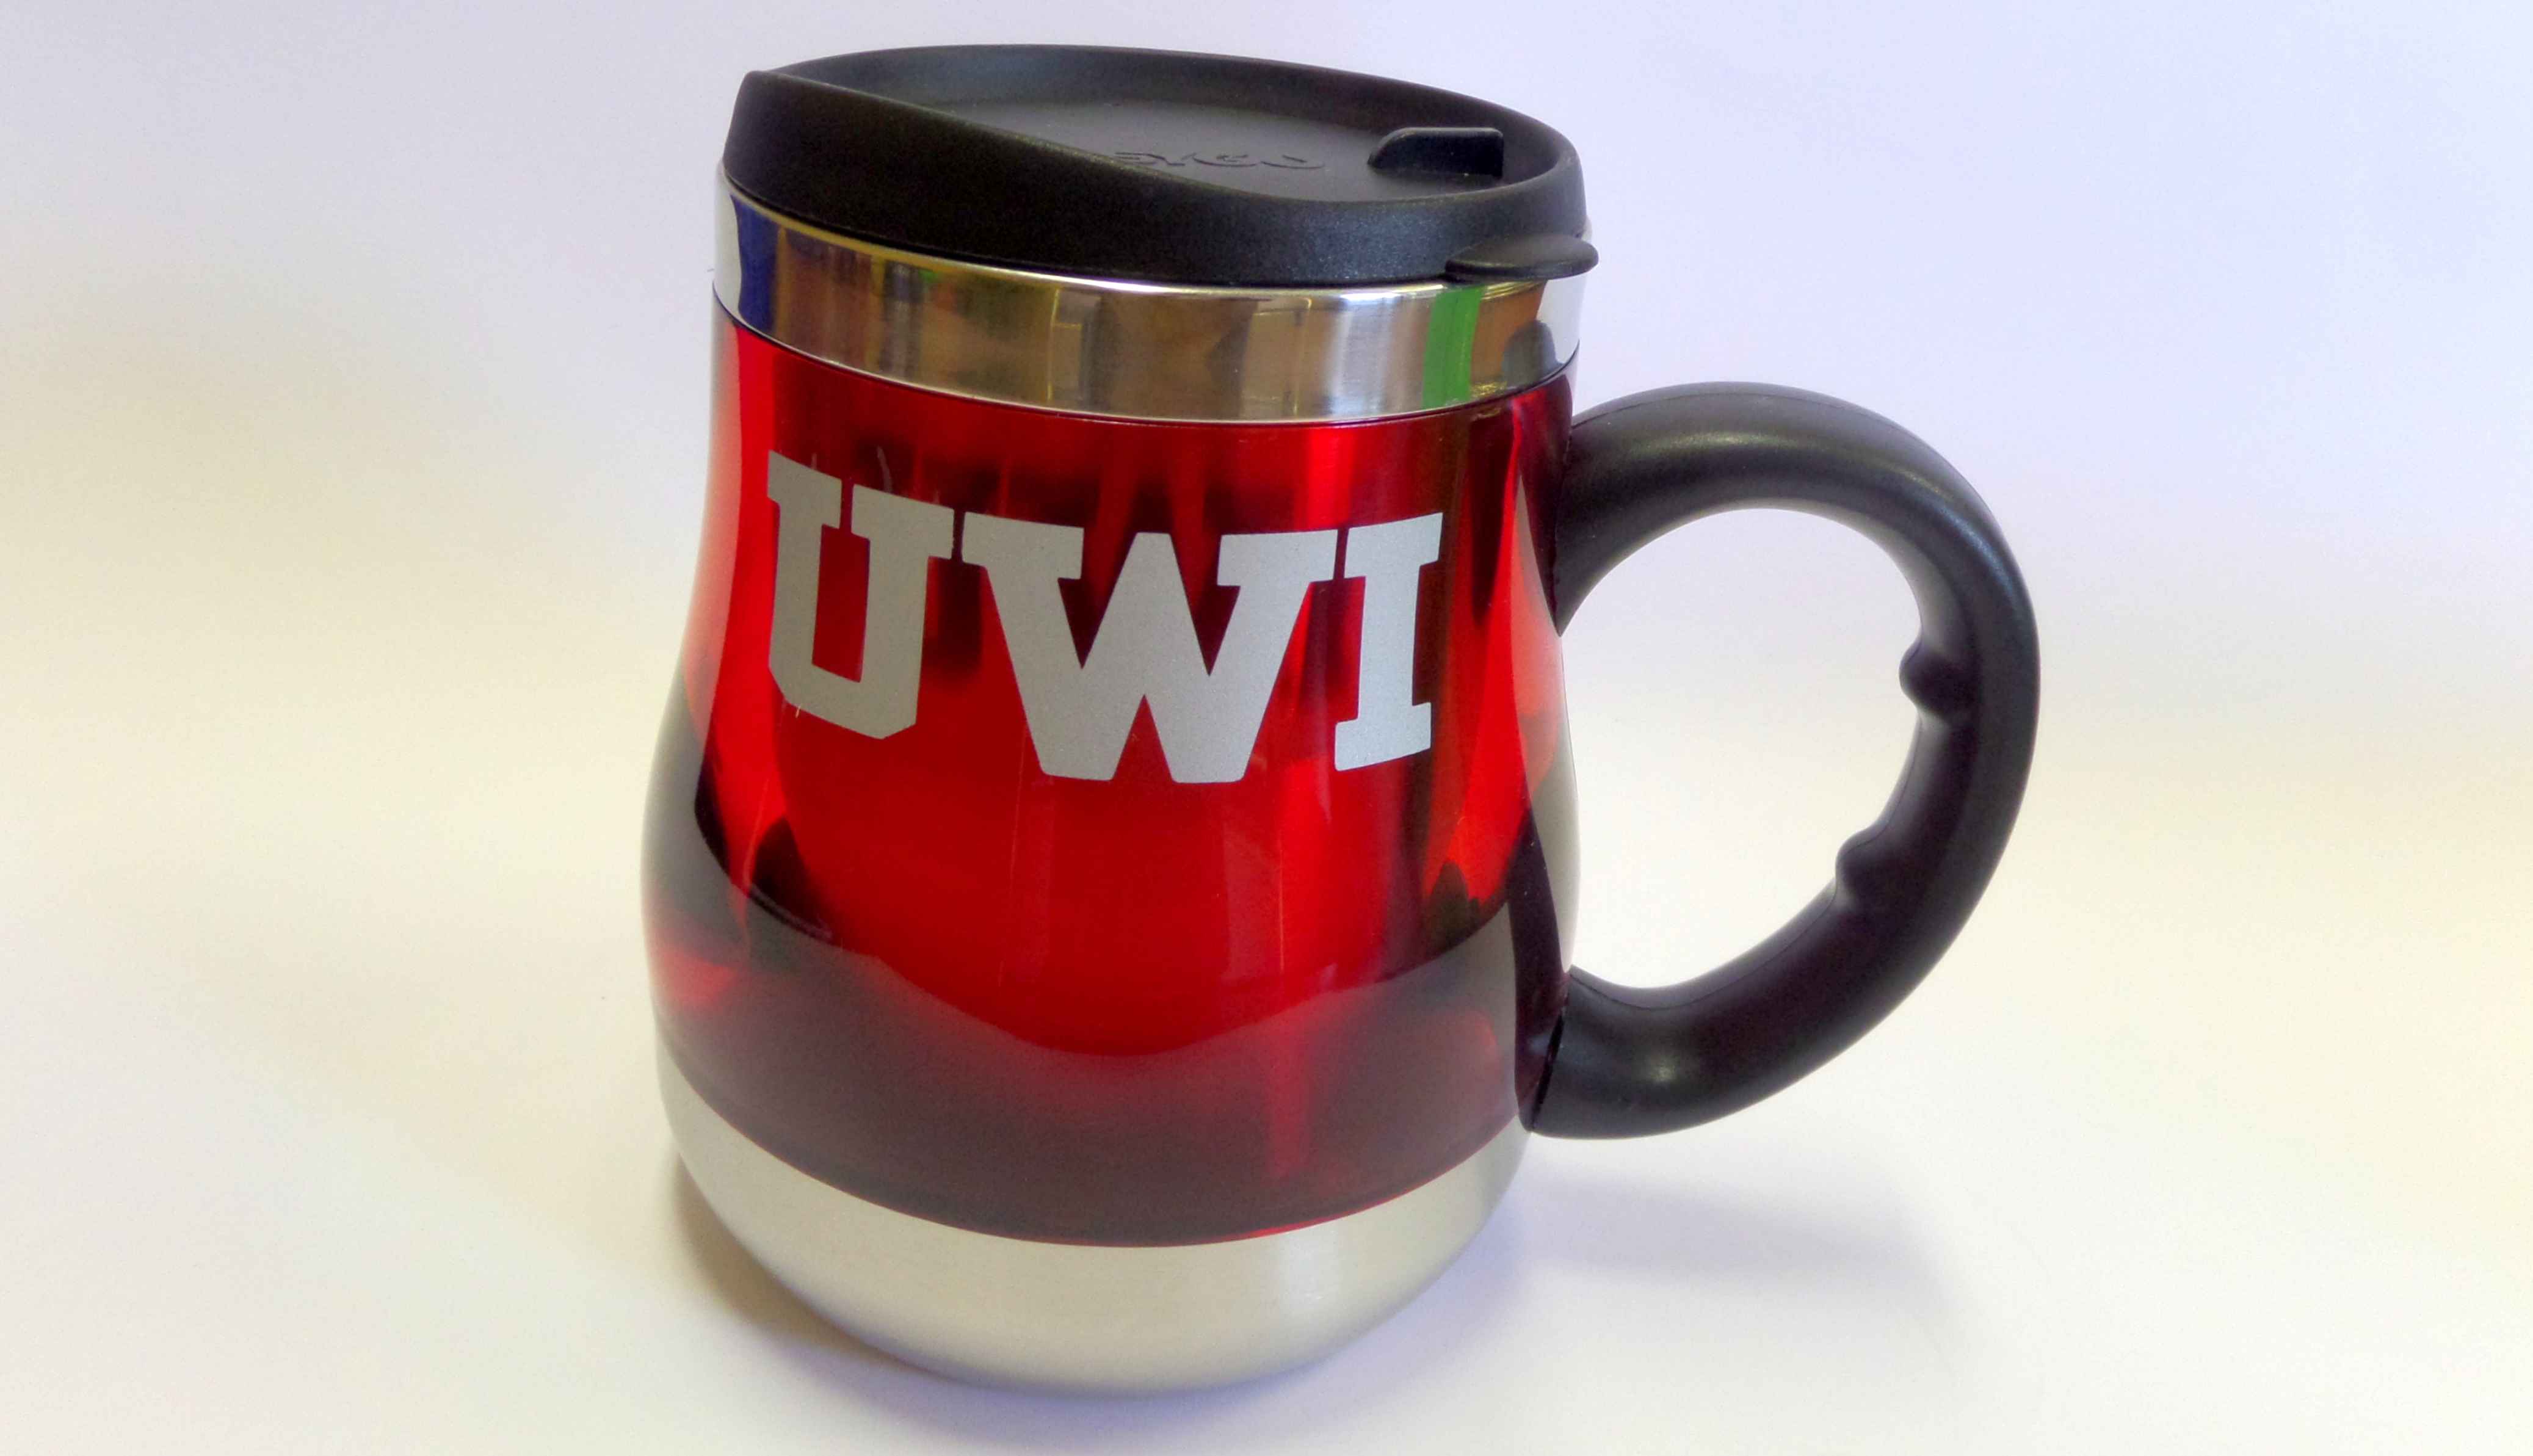 UWI ACRYLIC/STAINLESS STEEL EXECUTIVE TRAVEL MUG